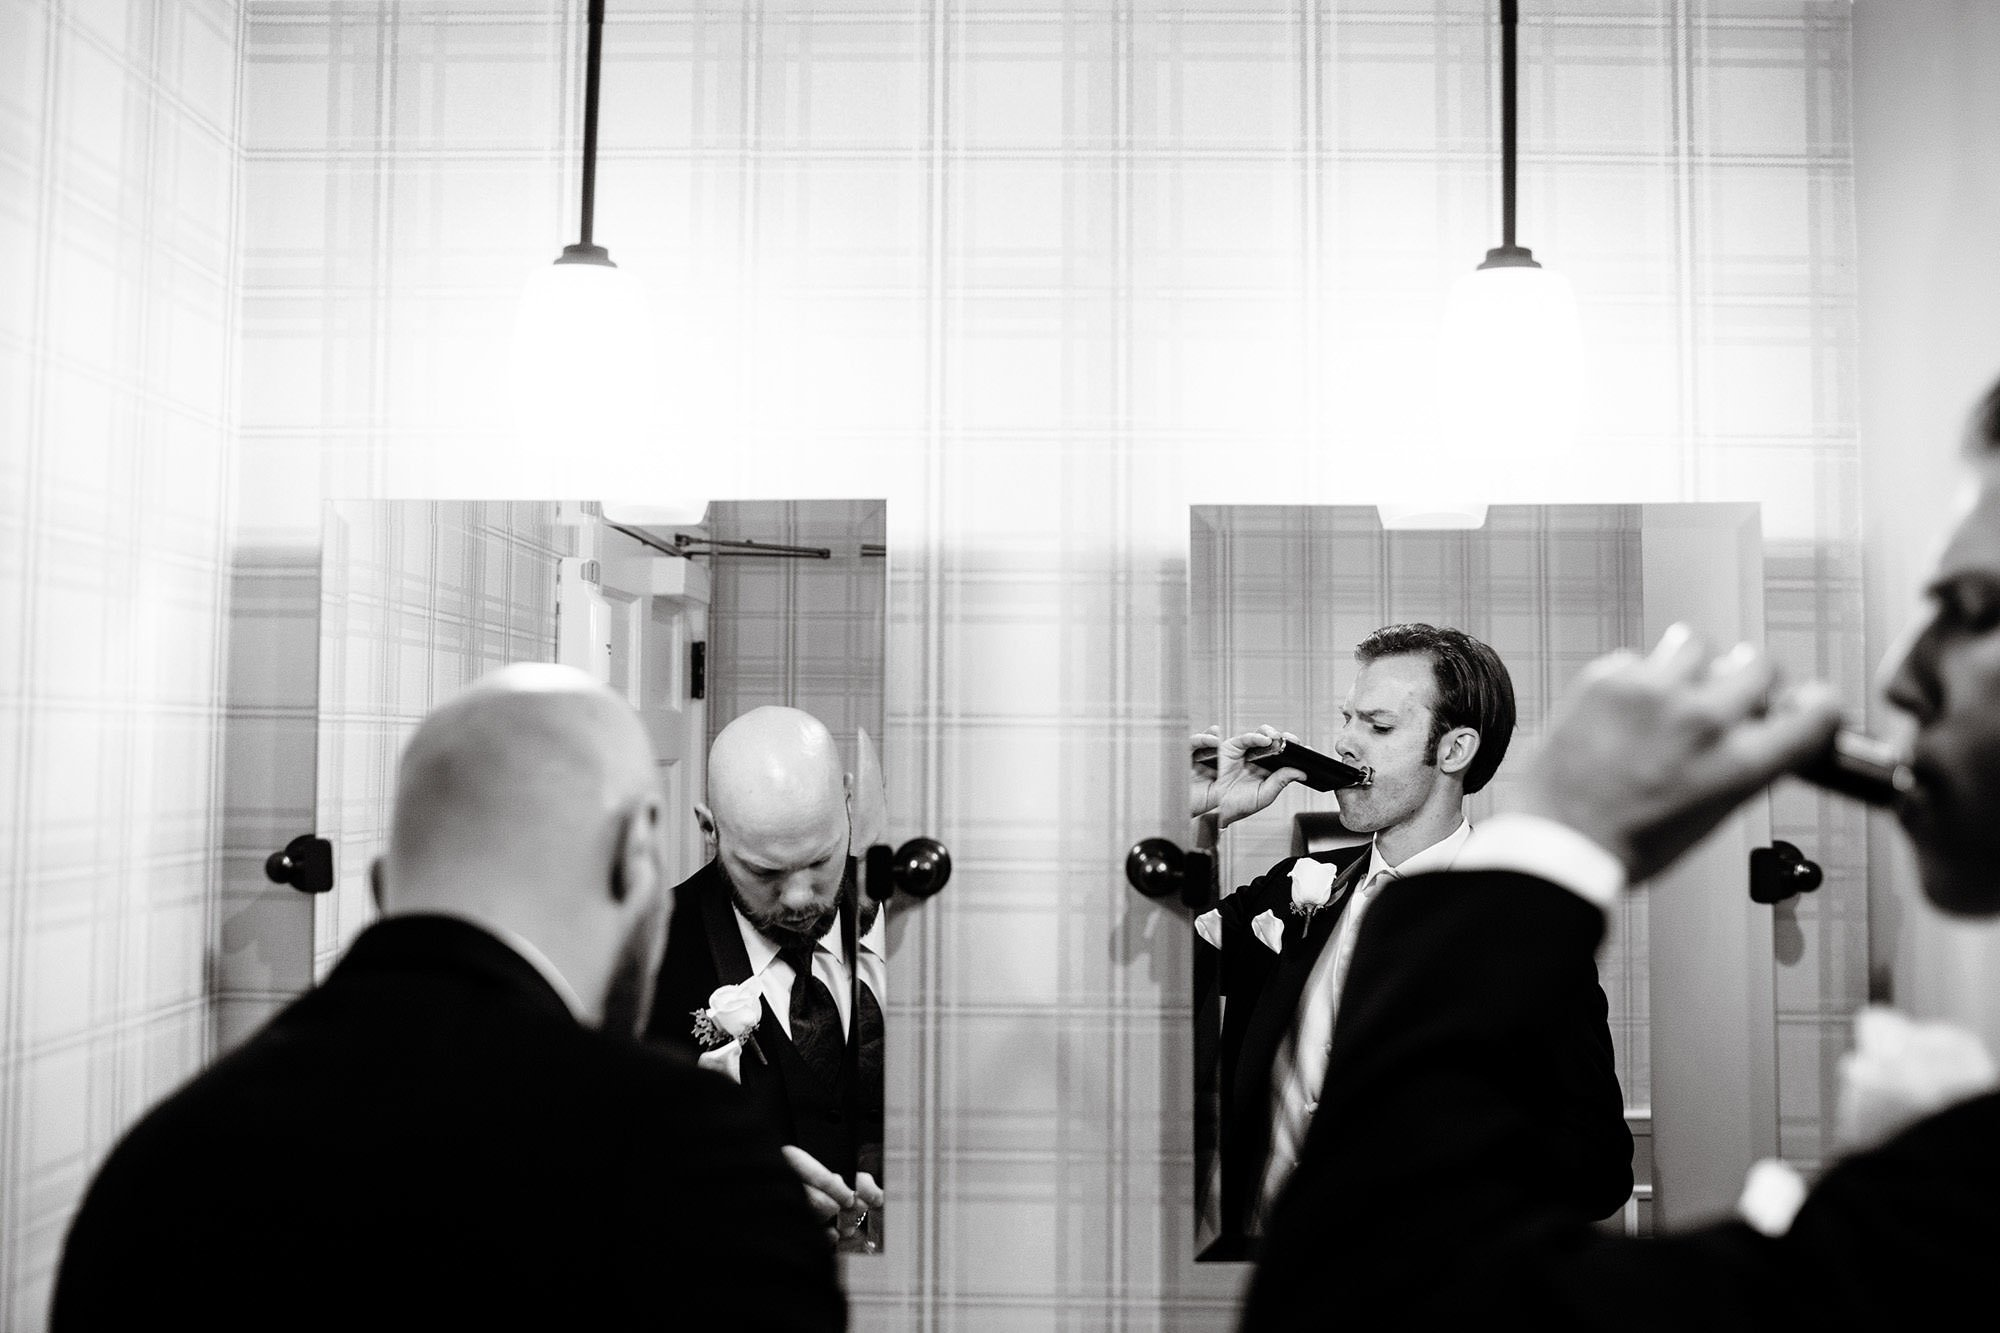 The groom gets ready with his groomsmen in a bathroom before his White Cliffs Country Club Wedding ceremony.